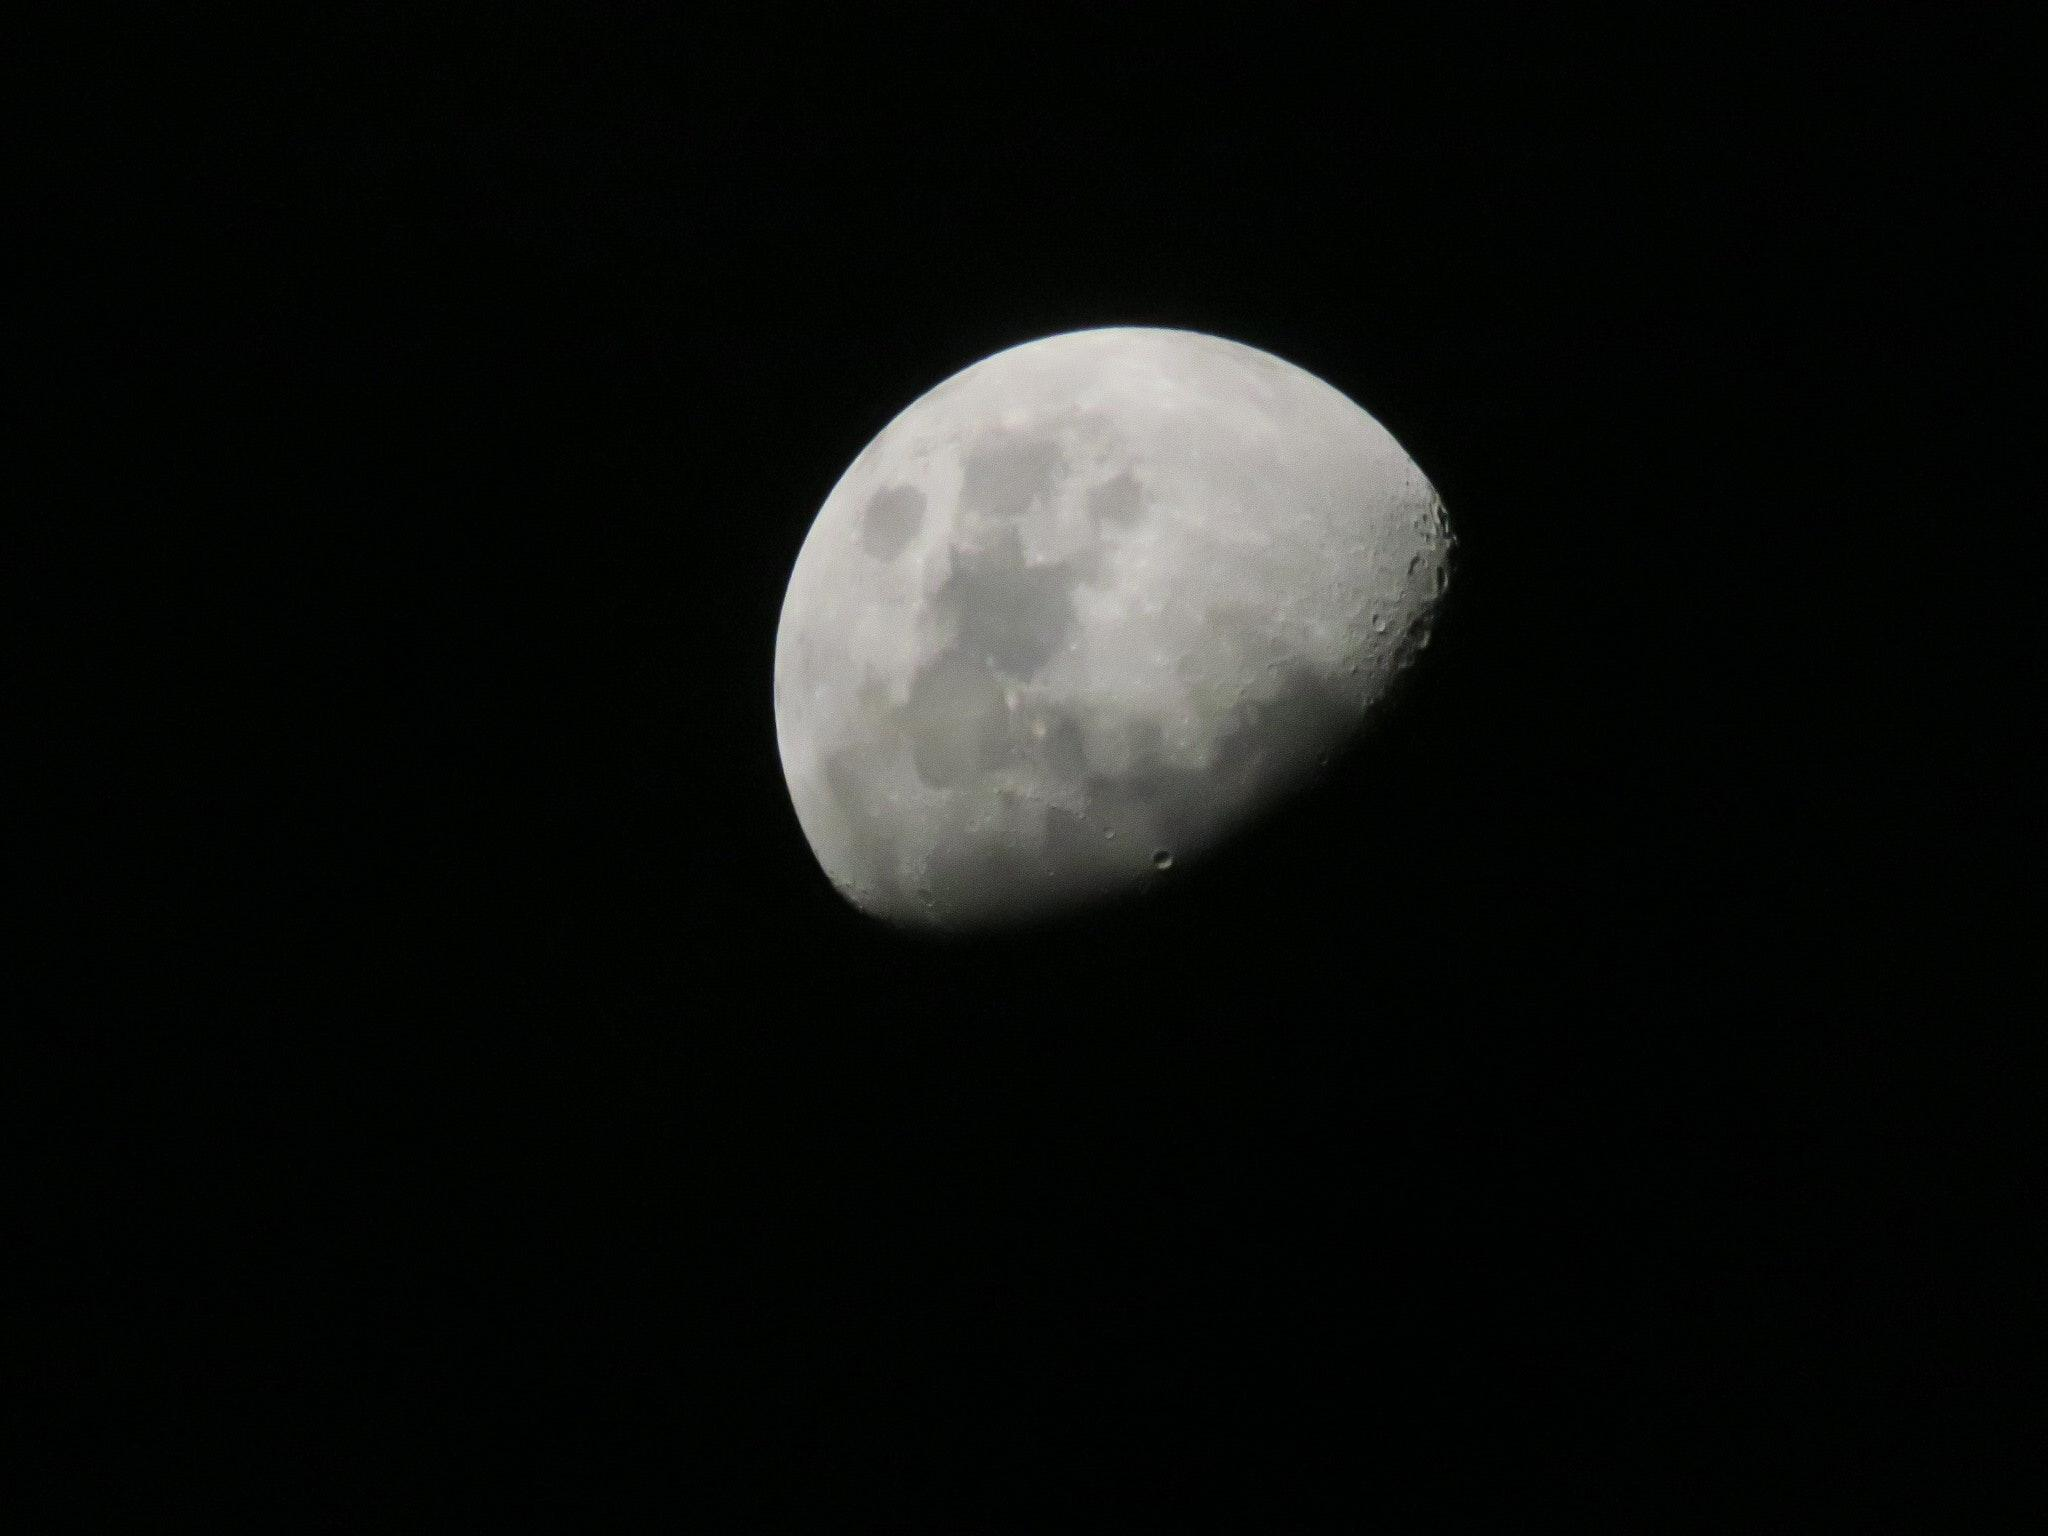 Free stock photo of Waxing Gibbous Moon